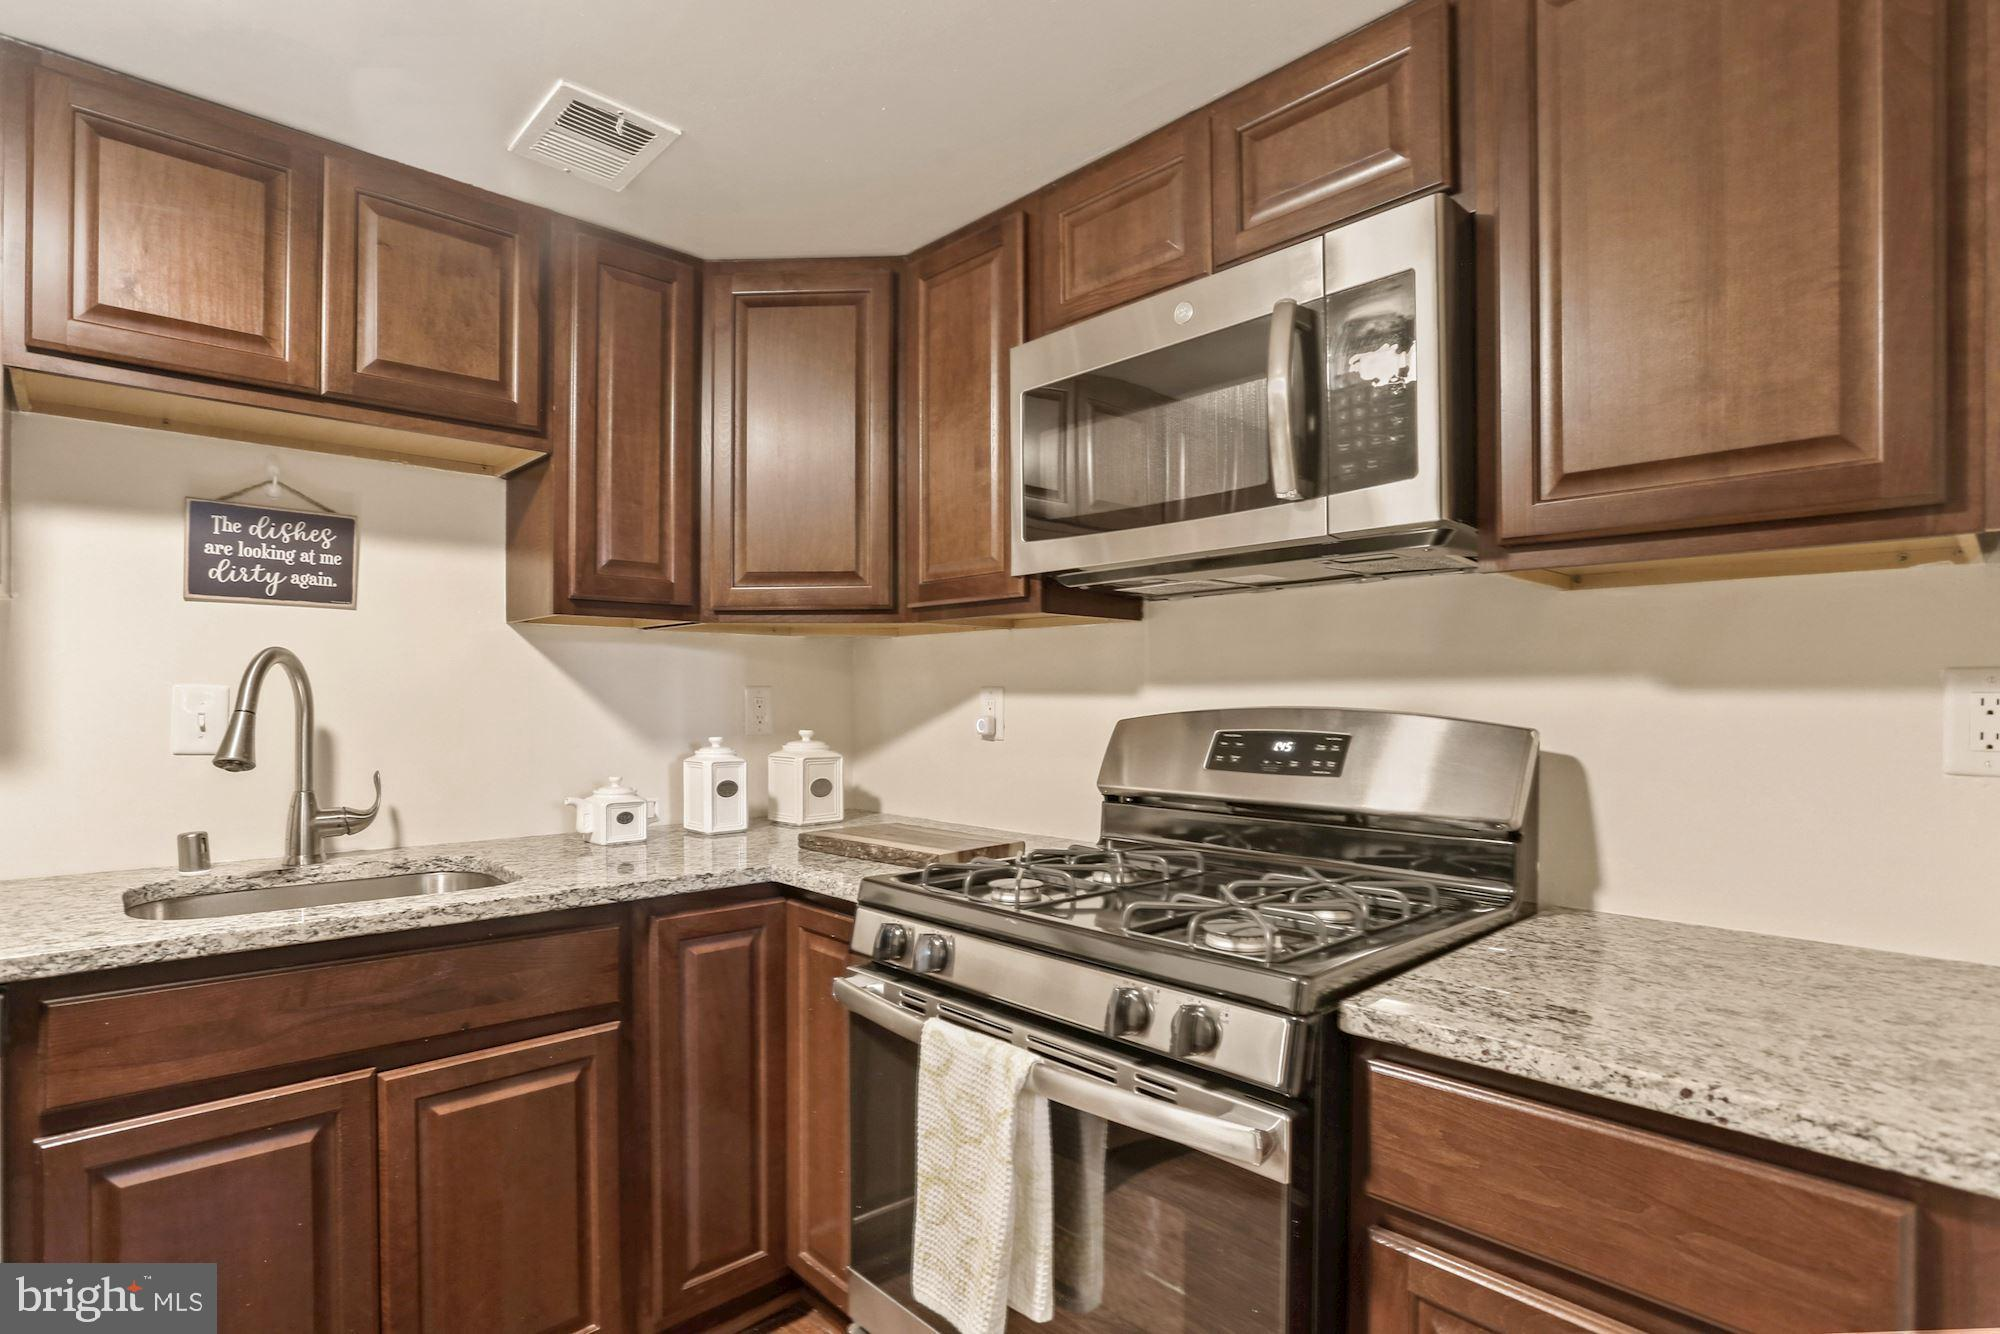 Escape apartment living with this Amazing 2 bedroom and 1 bath condo with Private Entrance in the Ho